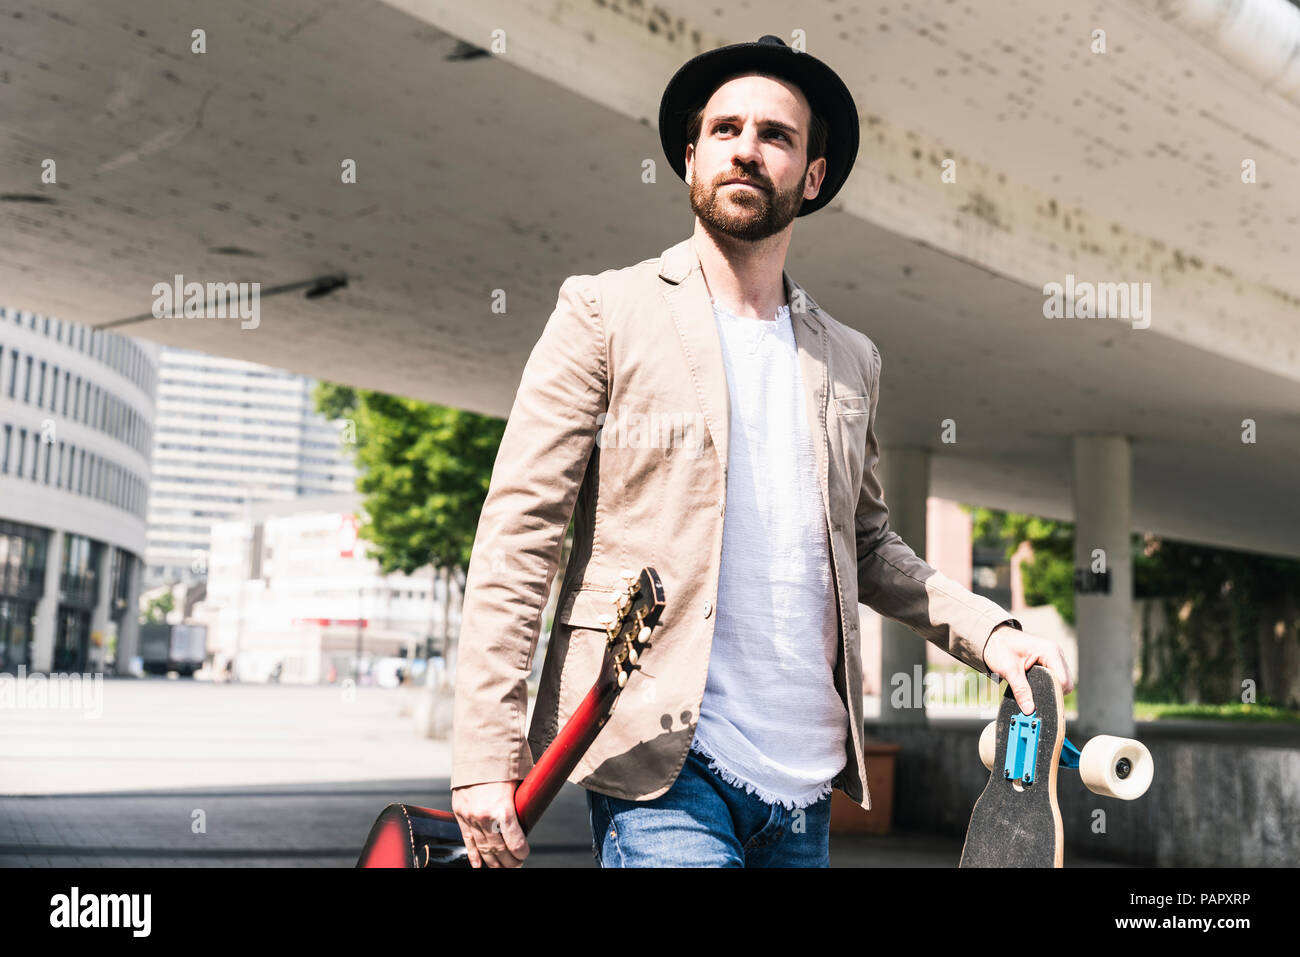 Young man with guitar and skateboard walking in the city - Stock Image